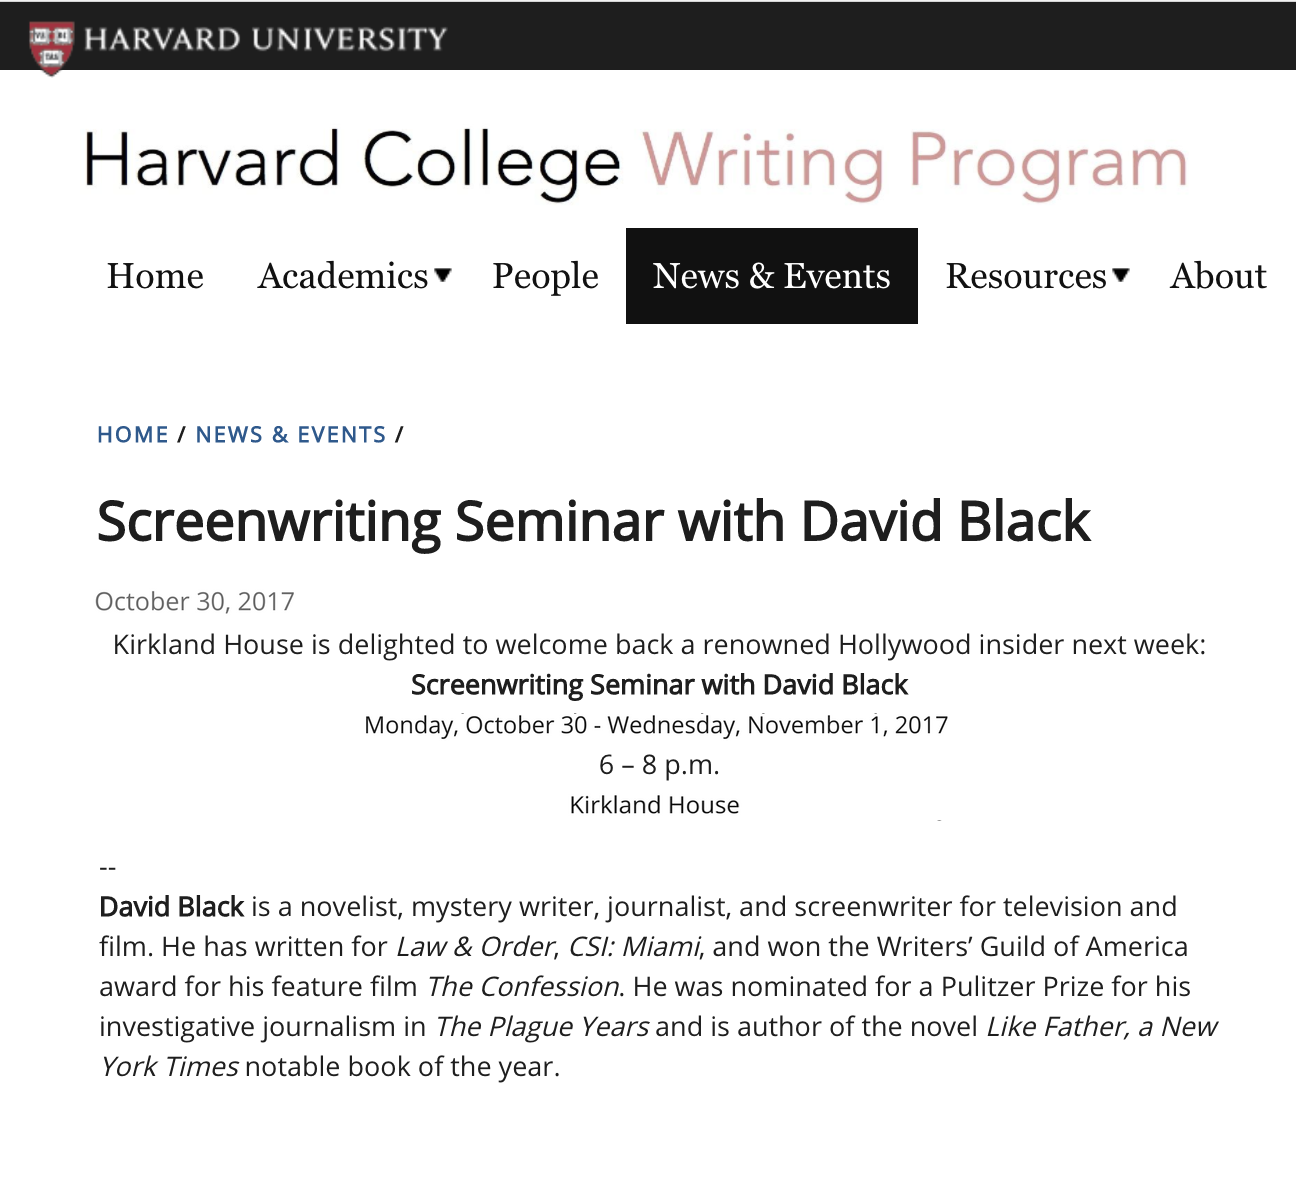 screenwriting-seminar-david-black-paul-beston.png